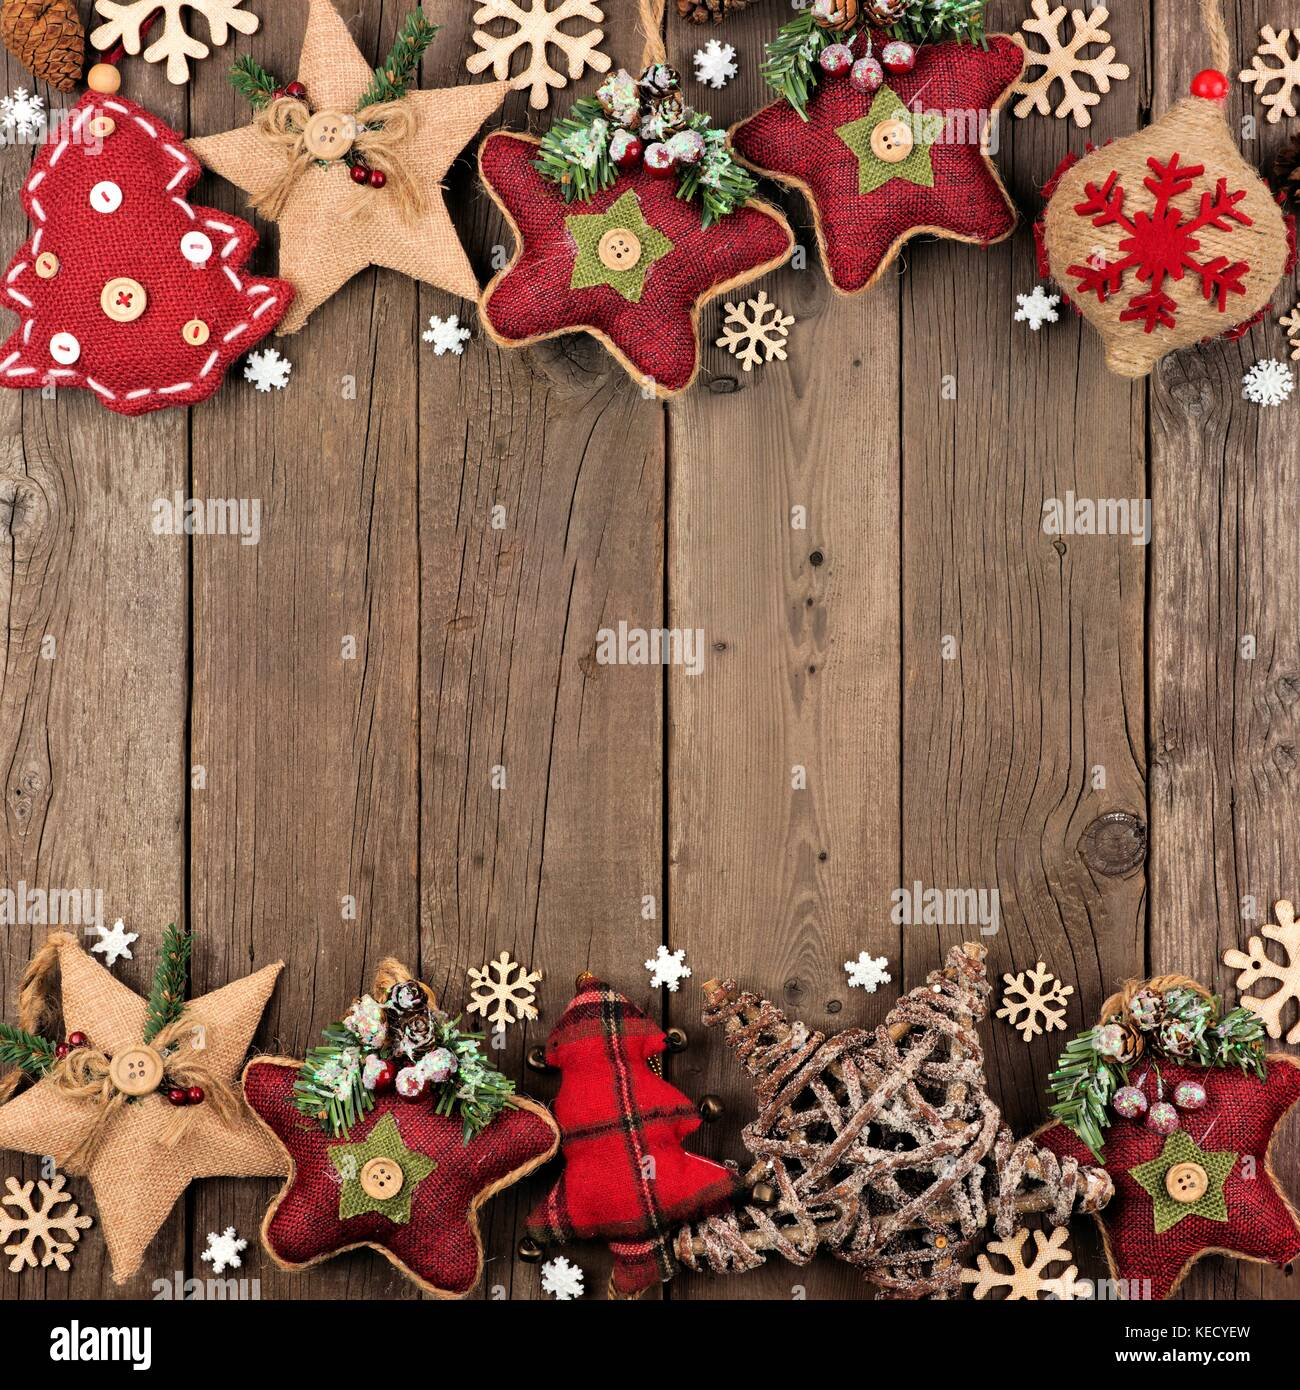 Rustic Christmas Double Border With Burlap And Cloth Ornaments Over An Aged Wood Background